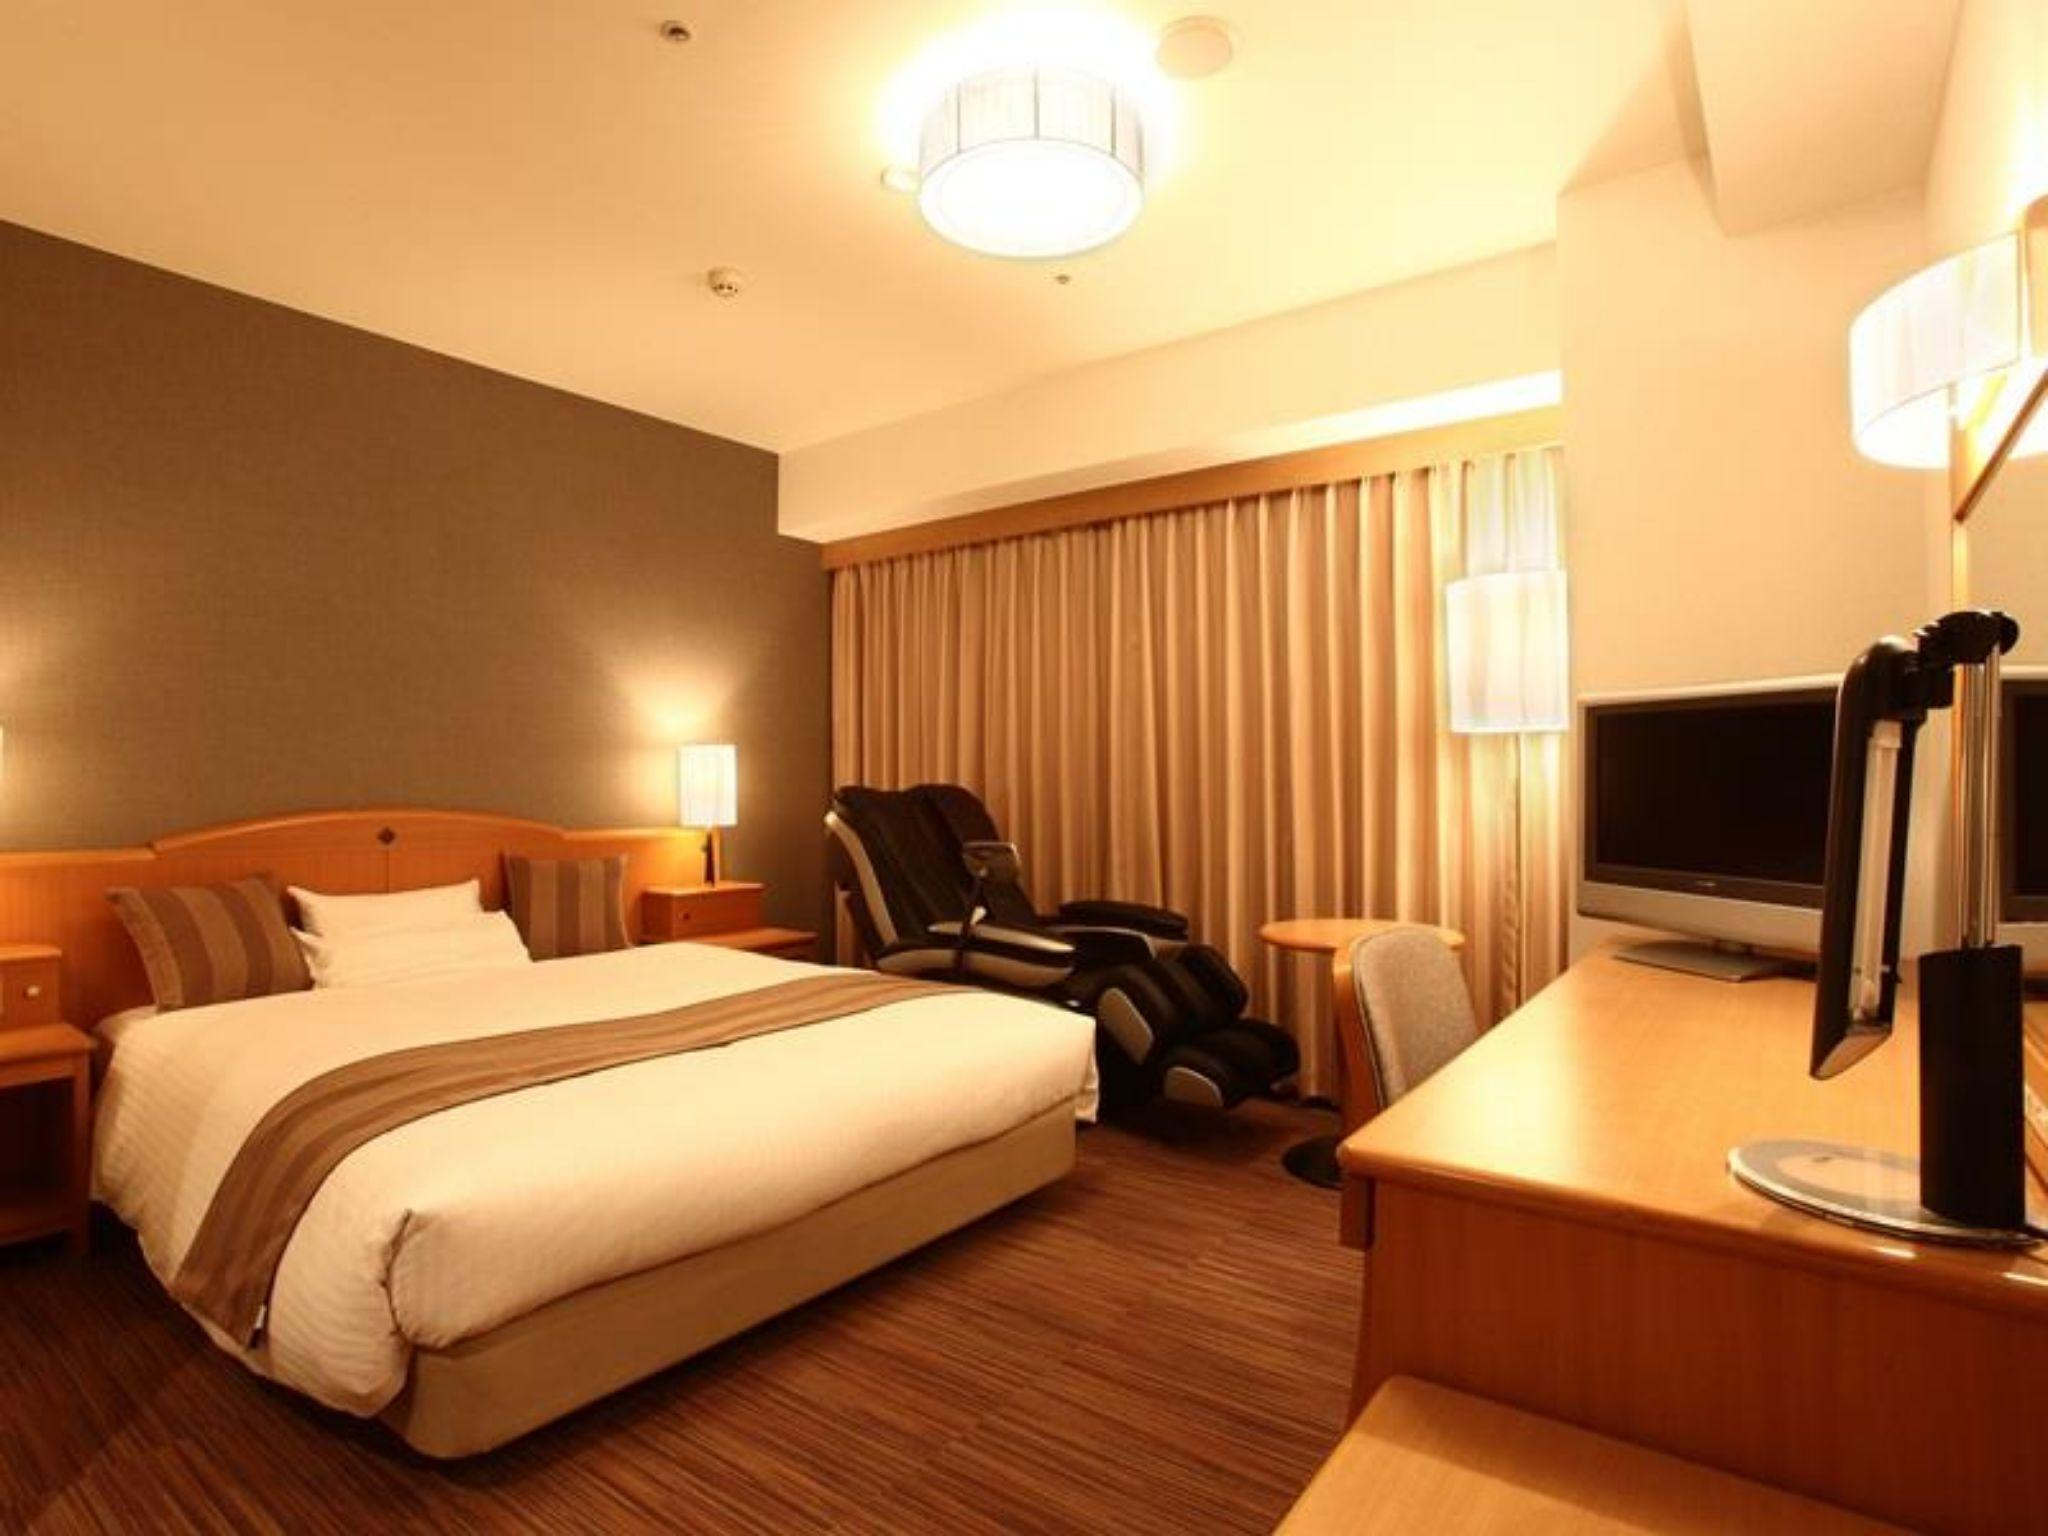 스탠다드 더블룸 (안마 의자, 금연) (Standard Double Room with Massage Chair - Non-Smoking)